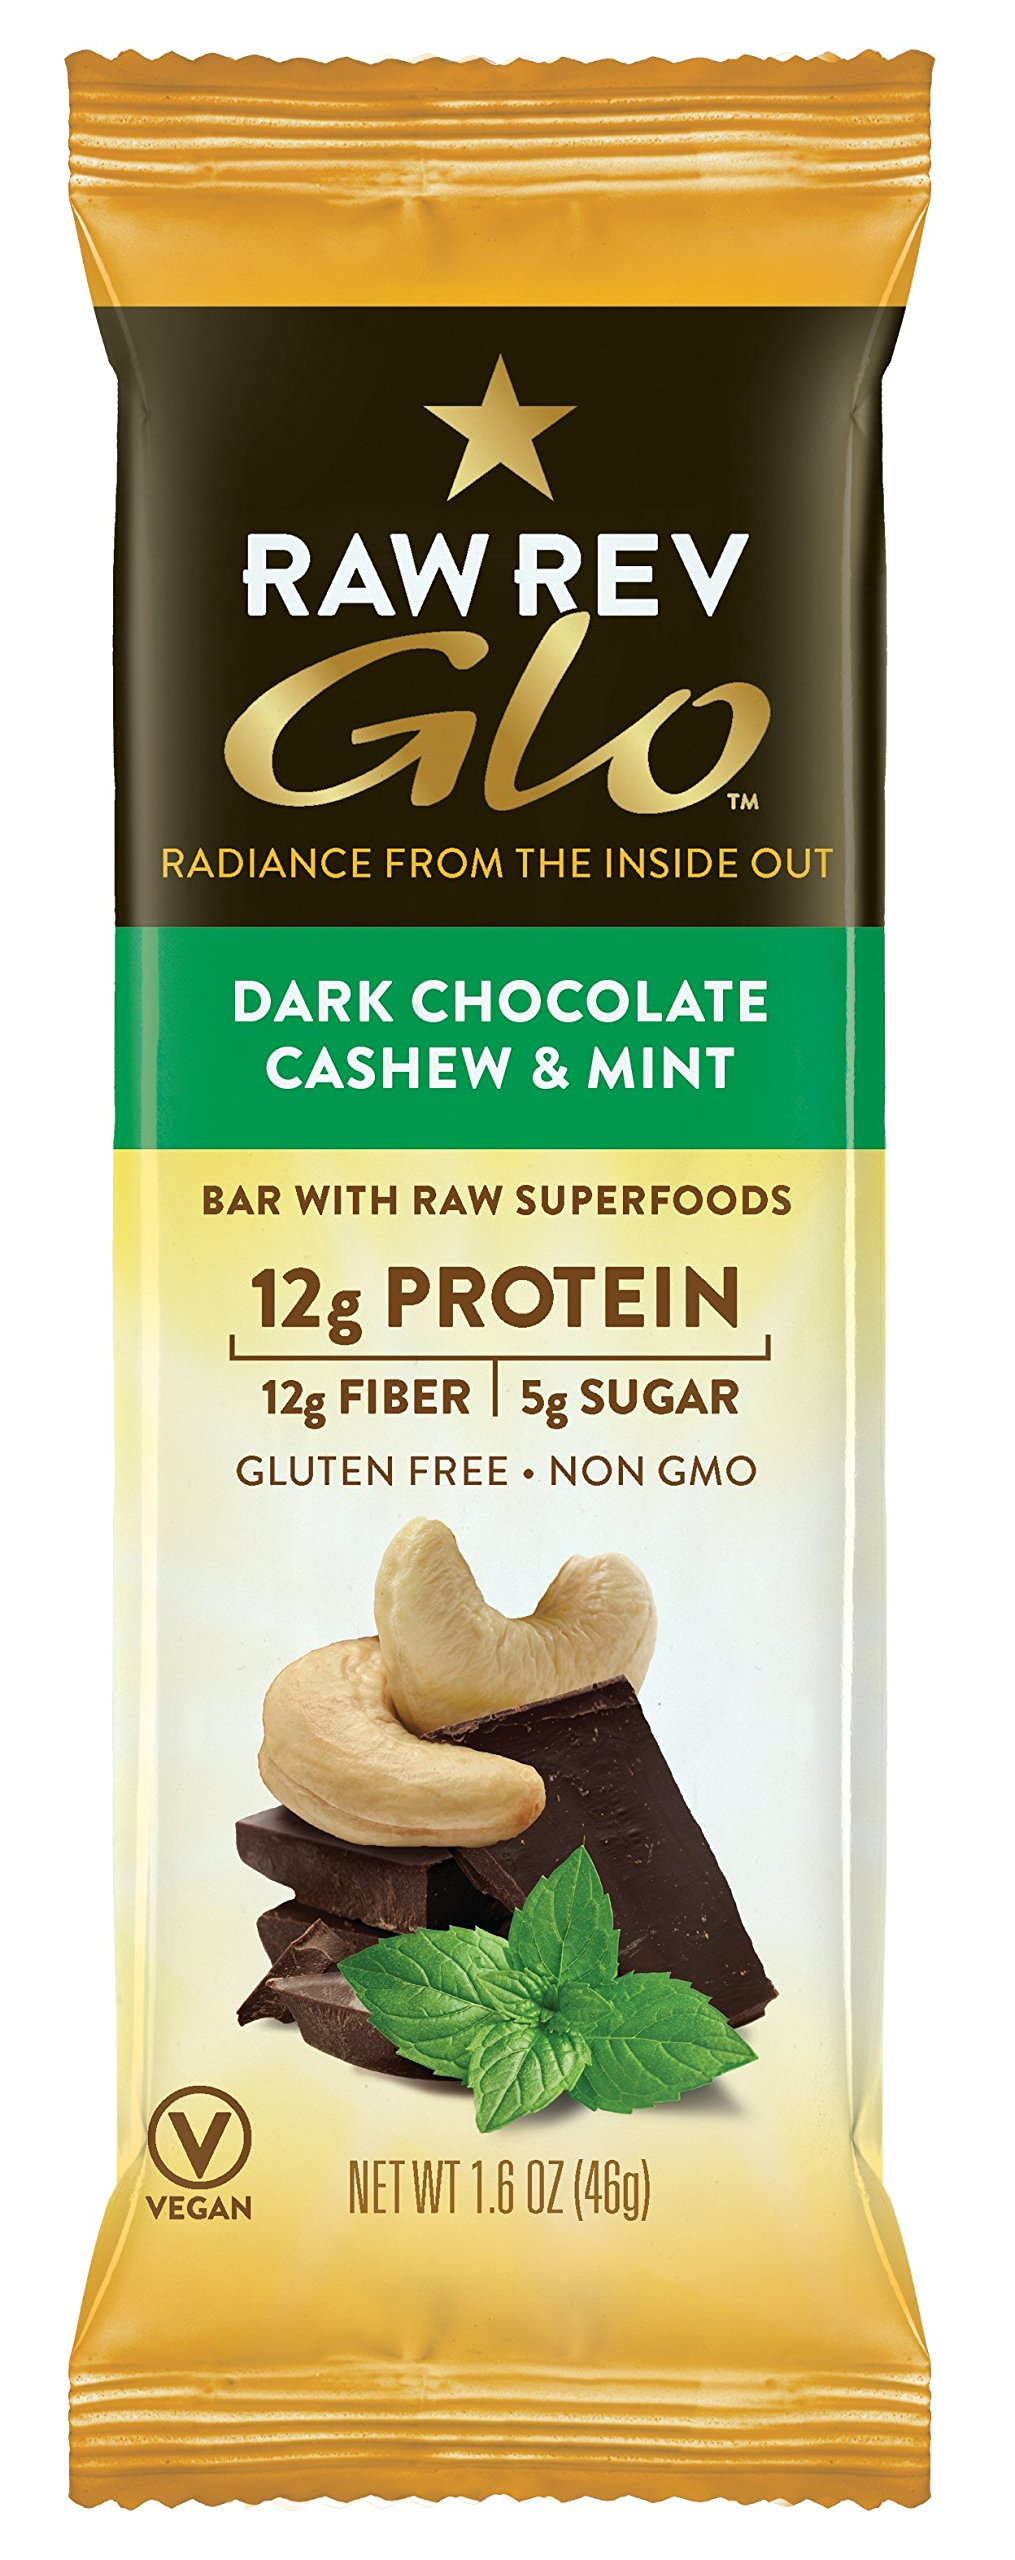 Raw Rev Glo Vegan, Gluten-Free Protein Bars - Dark Chocolate Cashew Mint 1.6 ounce (Pack of 12)